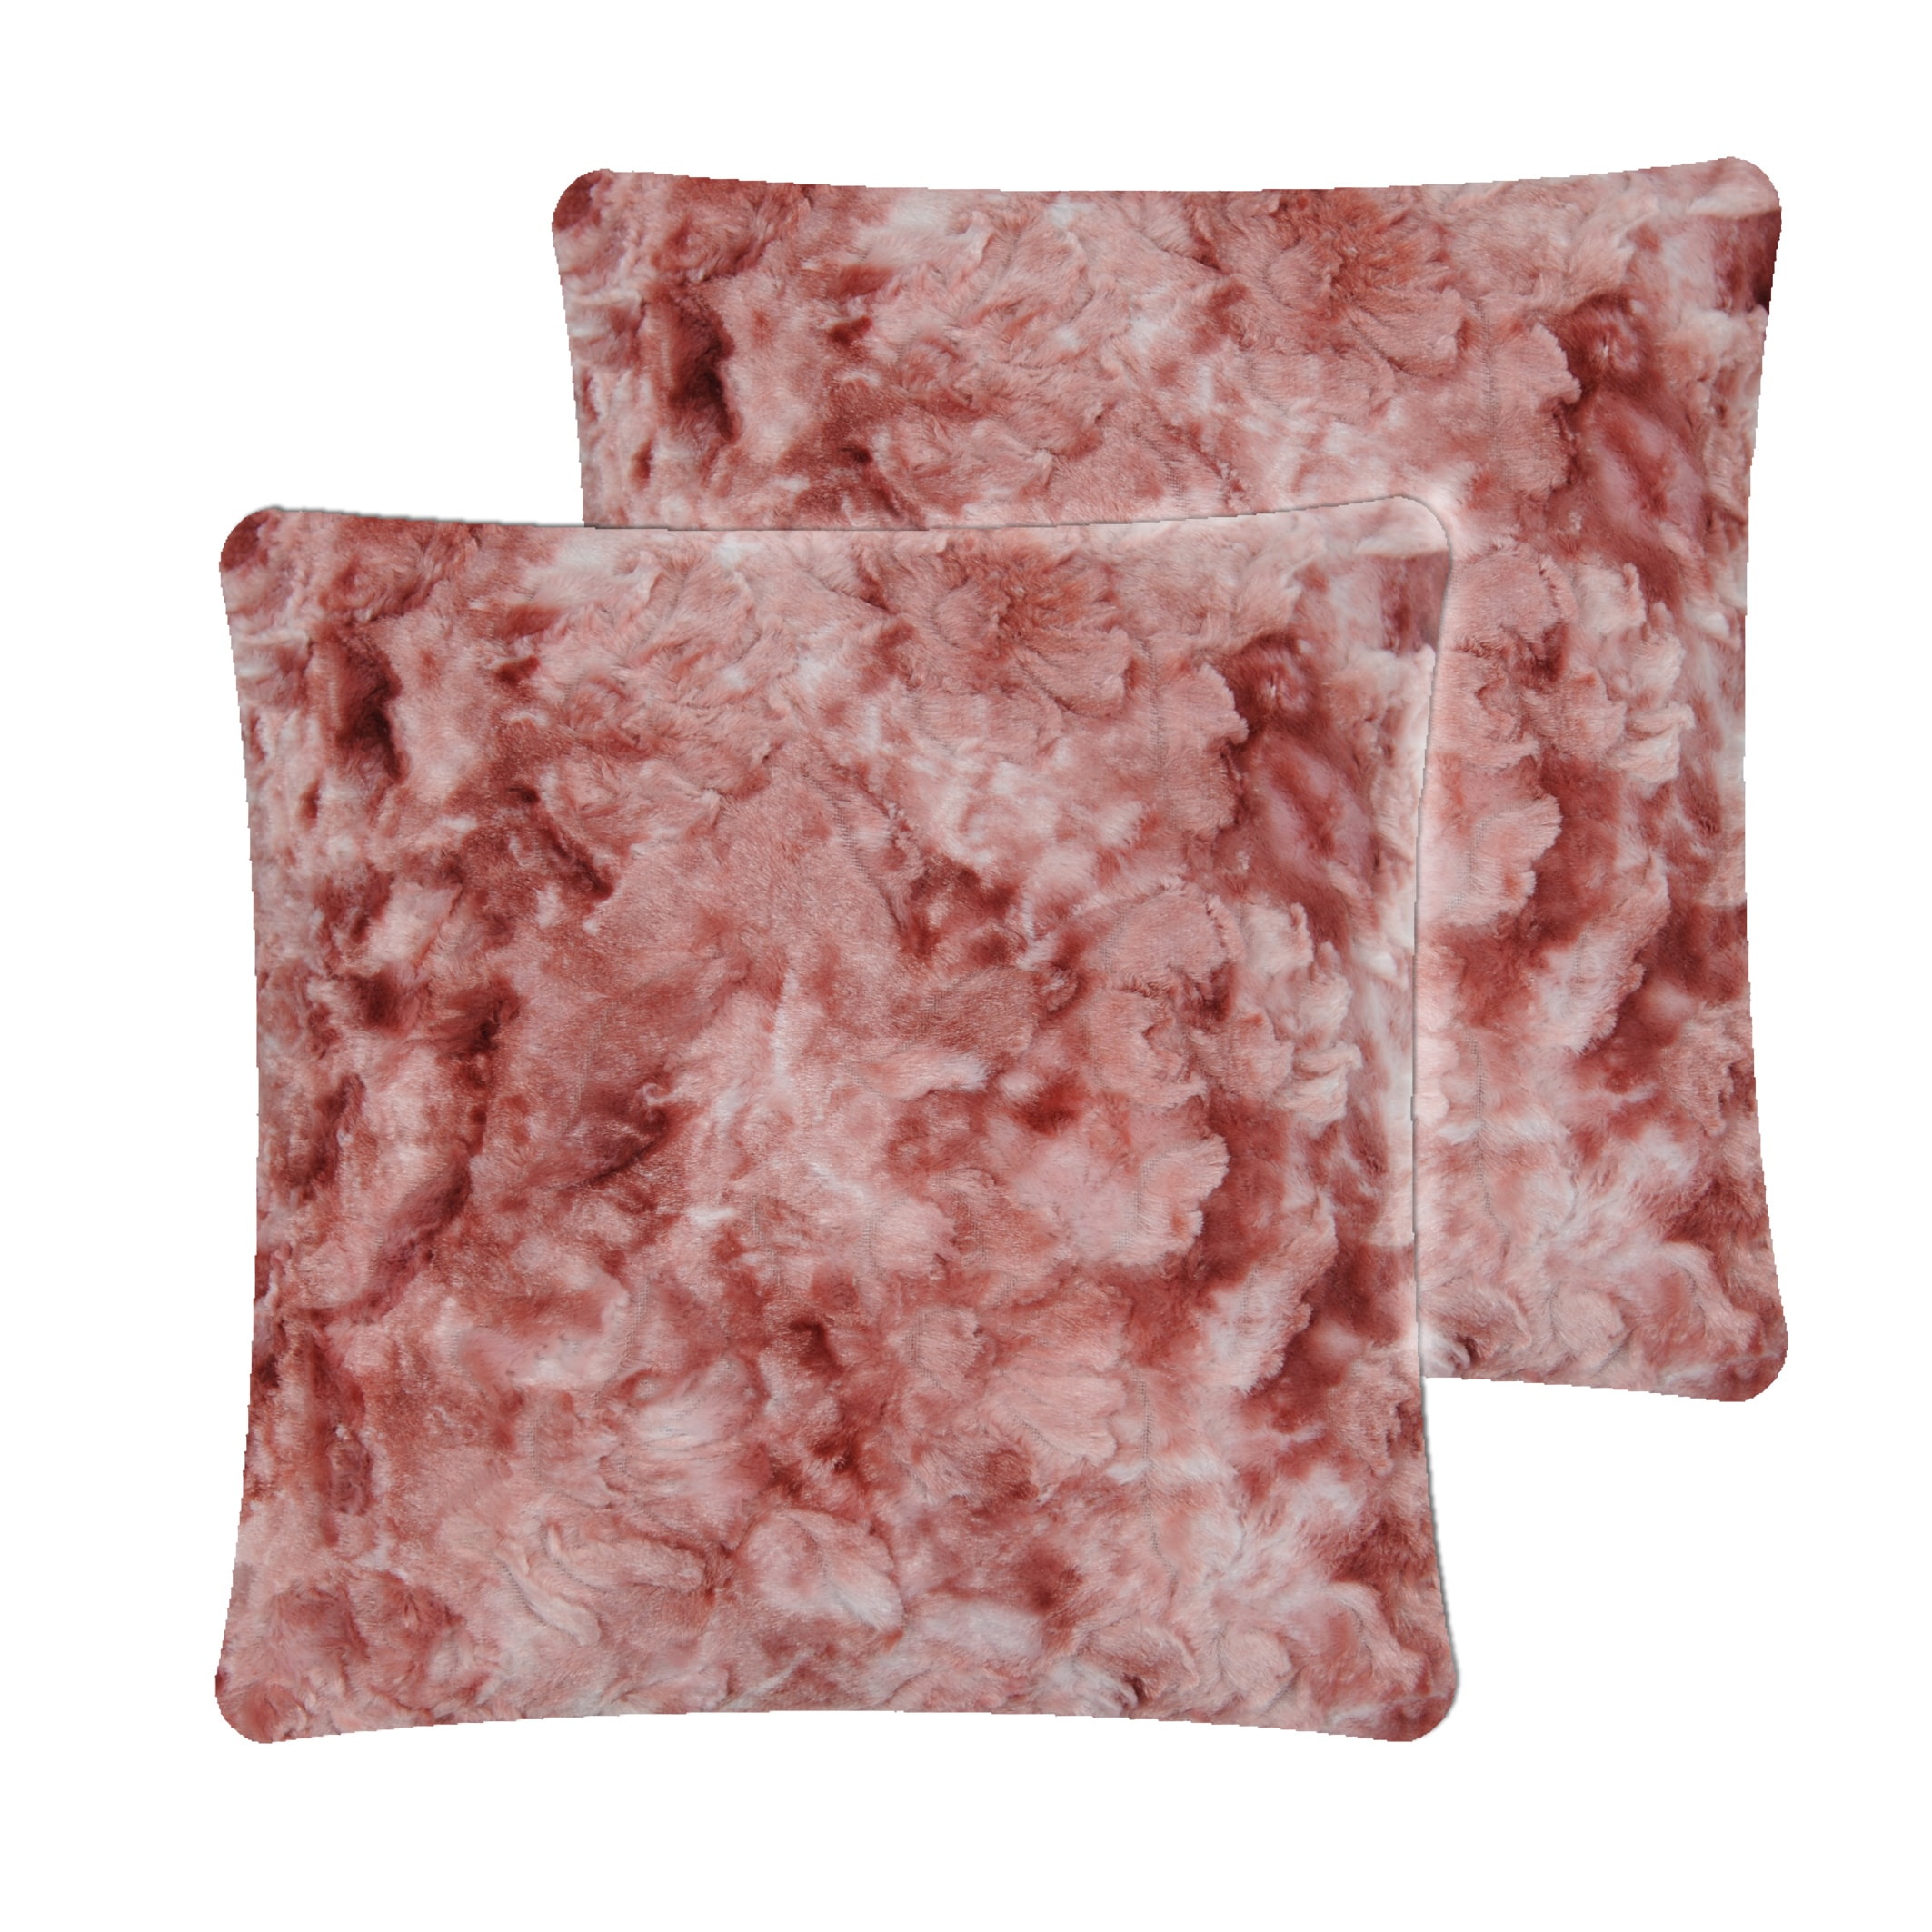 Orient Anna Ricci Brushed Floral Throw Pillow Covers (Set...